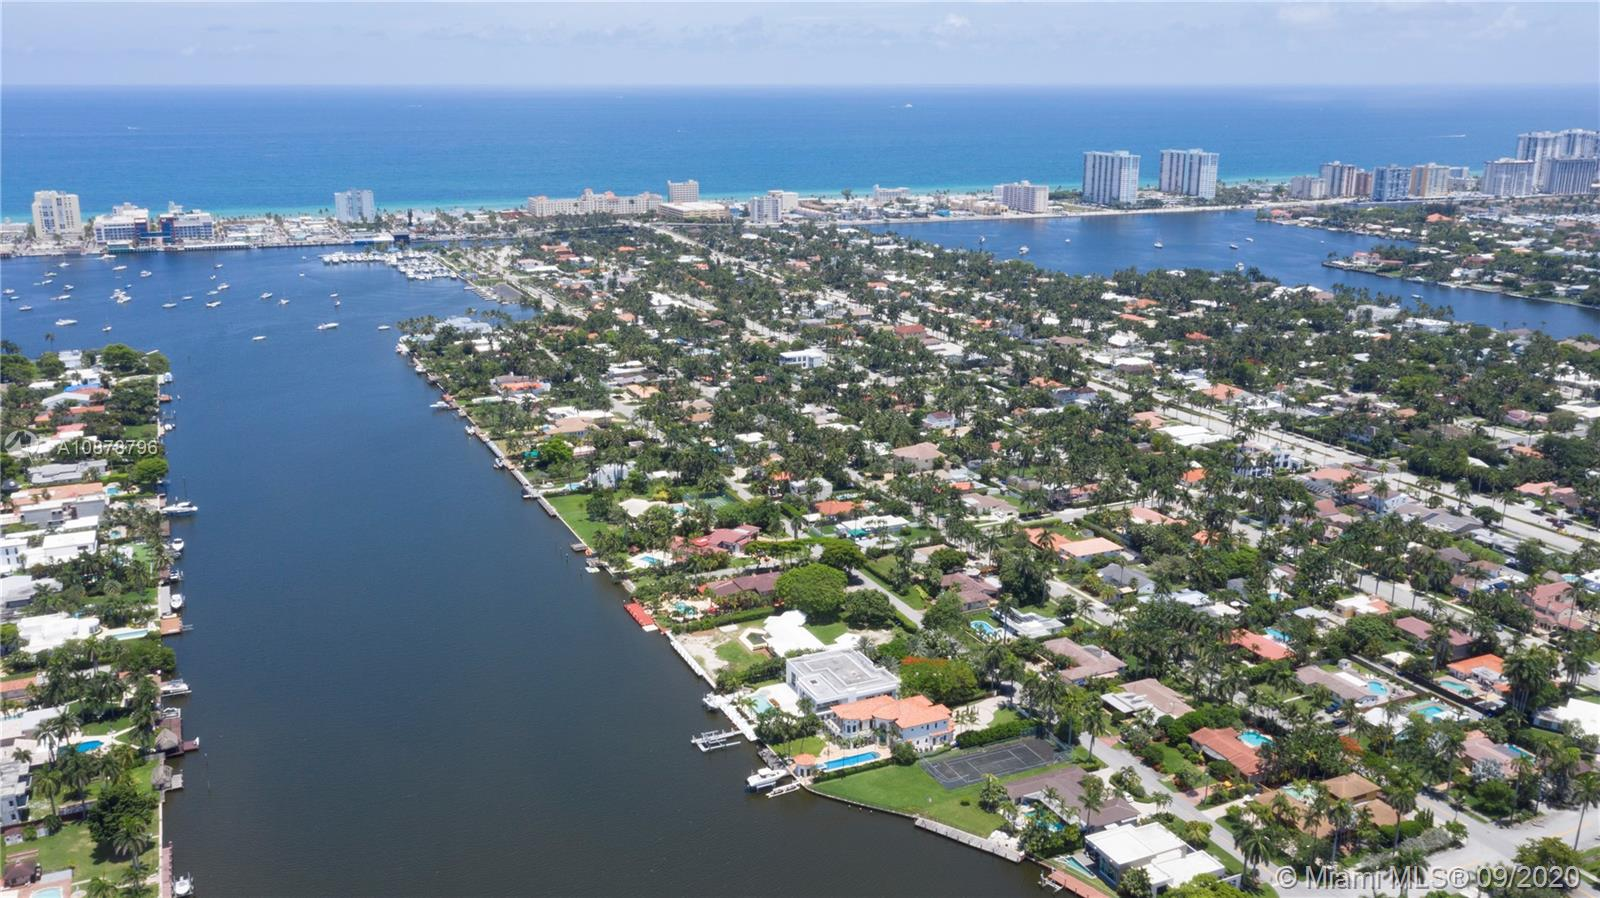 Impressive 32,508 Sqf Lot, a unique oversize waterfront in Hollywood Lakes.  2019 New Seawall and 80 ft. dock built to the highest & most current standards. Boater's paradise with direct access to Intracoastal and Atlantic Ocean no fixed bridges. Huge front and back yard perfect for designing per your lifestyle desire. Enjoy the richness of the new SLS Golf Resort (formerly Diplomat) which is going through a $220 million renovation and course redesign by Greg Norman. Make your dream home a reality. Just steps away from the full service Hollywood Boating Marina. Price is for land value. HOLLYWOOD HAS IT ALL!!